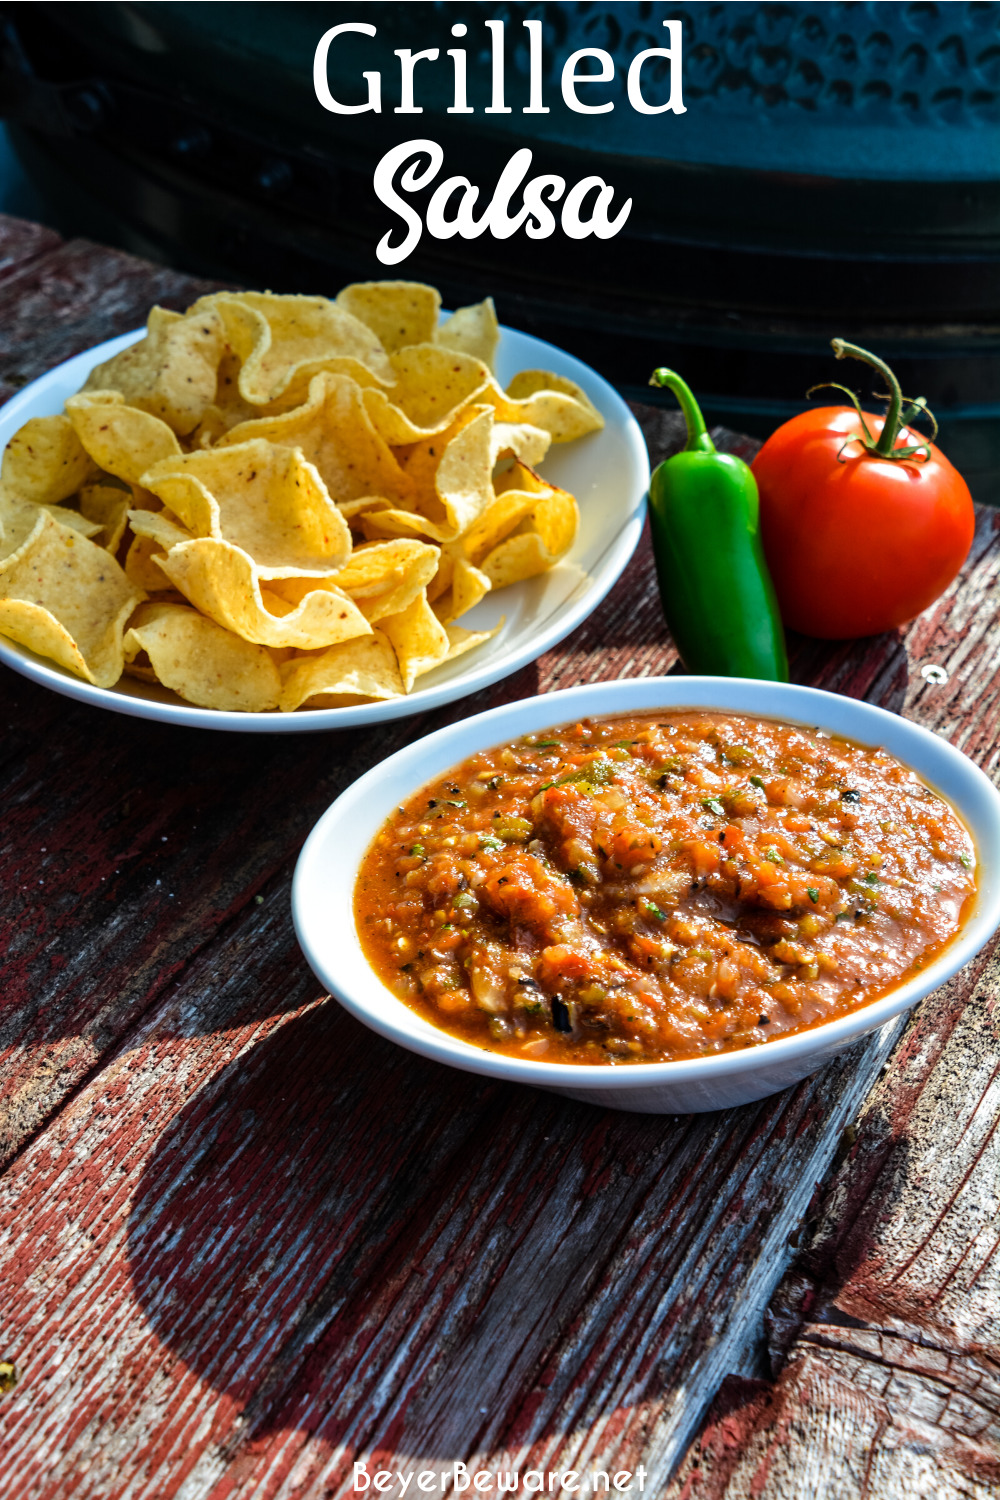 Fire-roasted salsa recipe takes garden fresh tomatoes, jalapenos, onions, garlic, and cilantro to the grill for a flame-grilled salsa recipe that is outrageously good and easy to make.